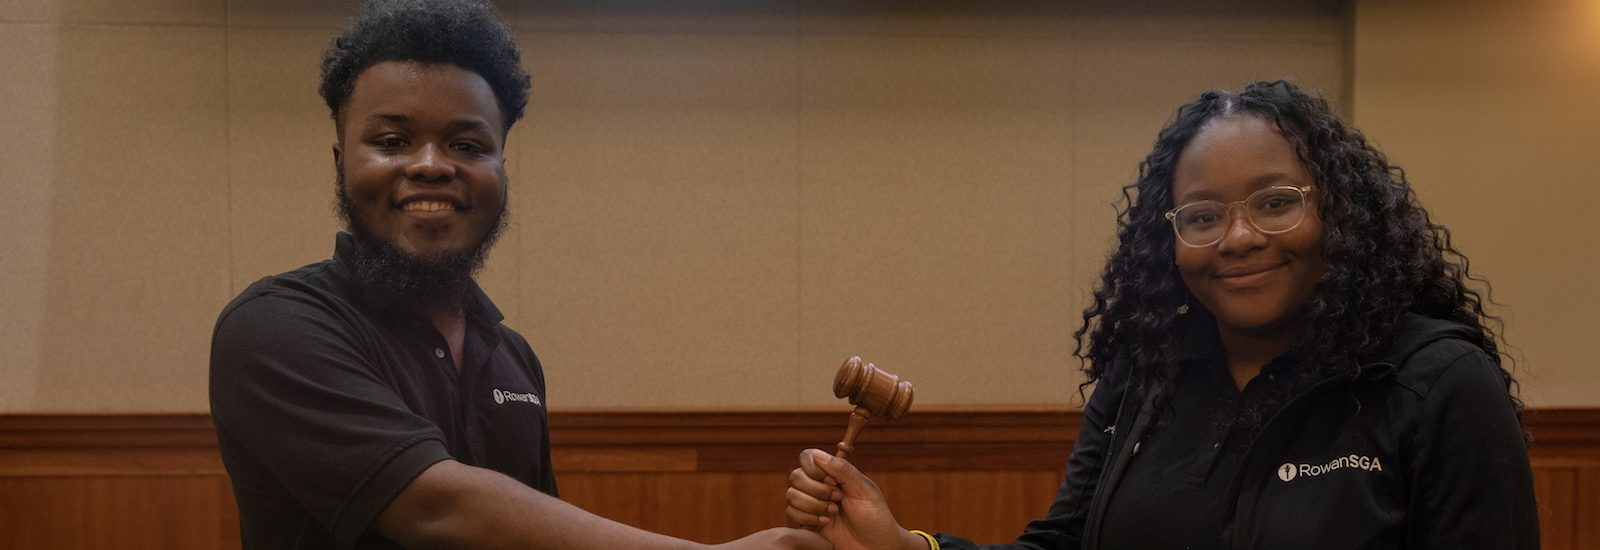 Arielle holds the student government association gavel.